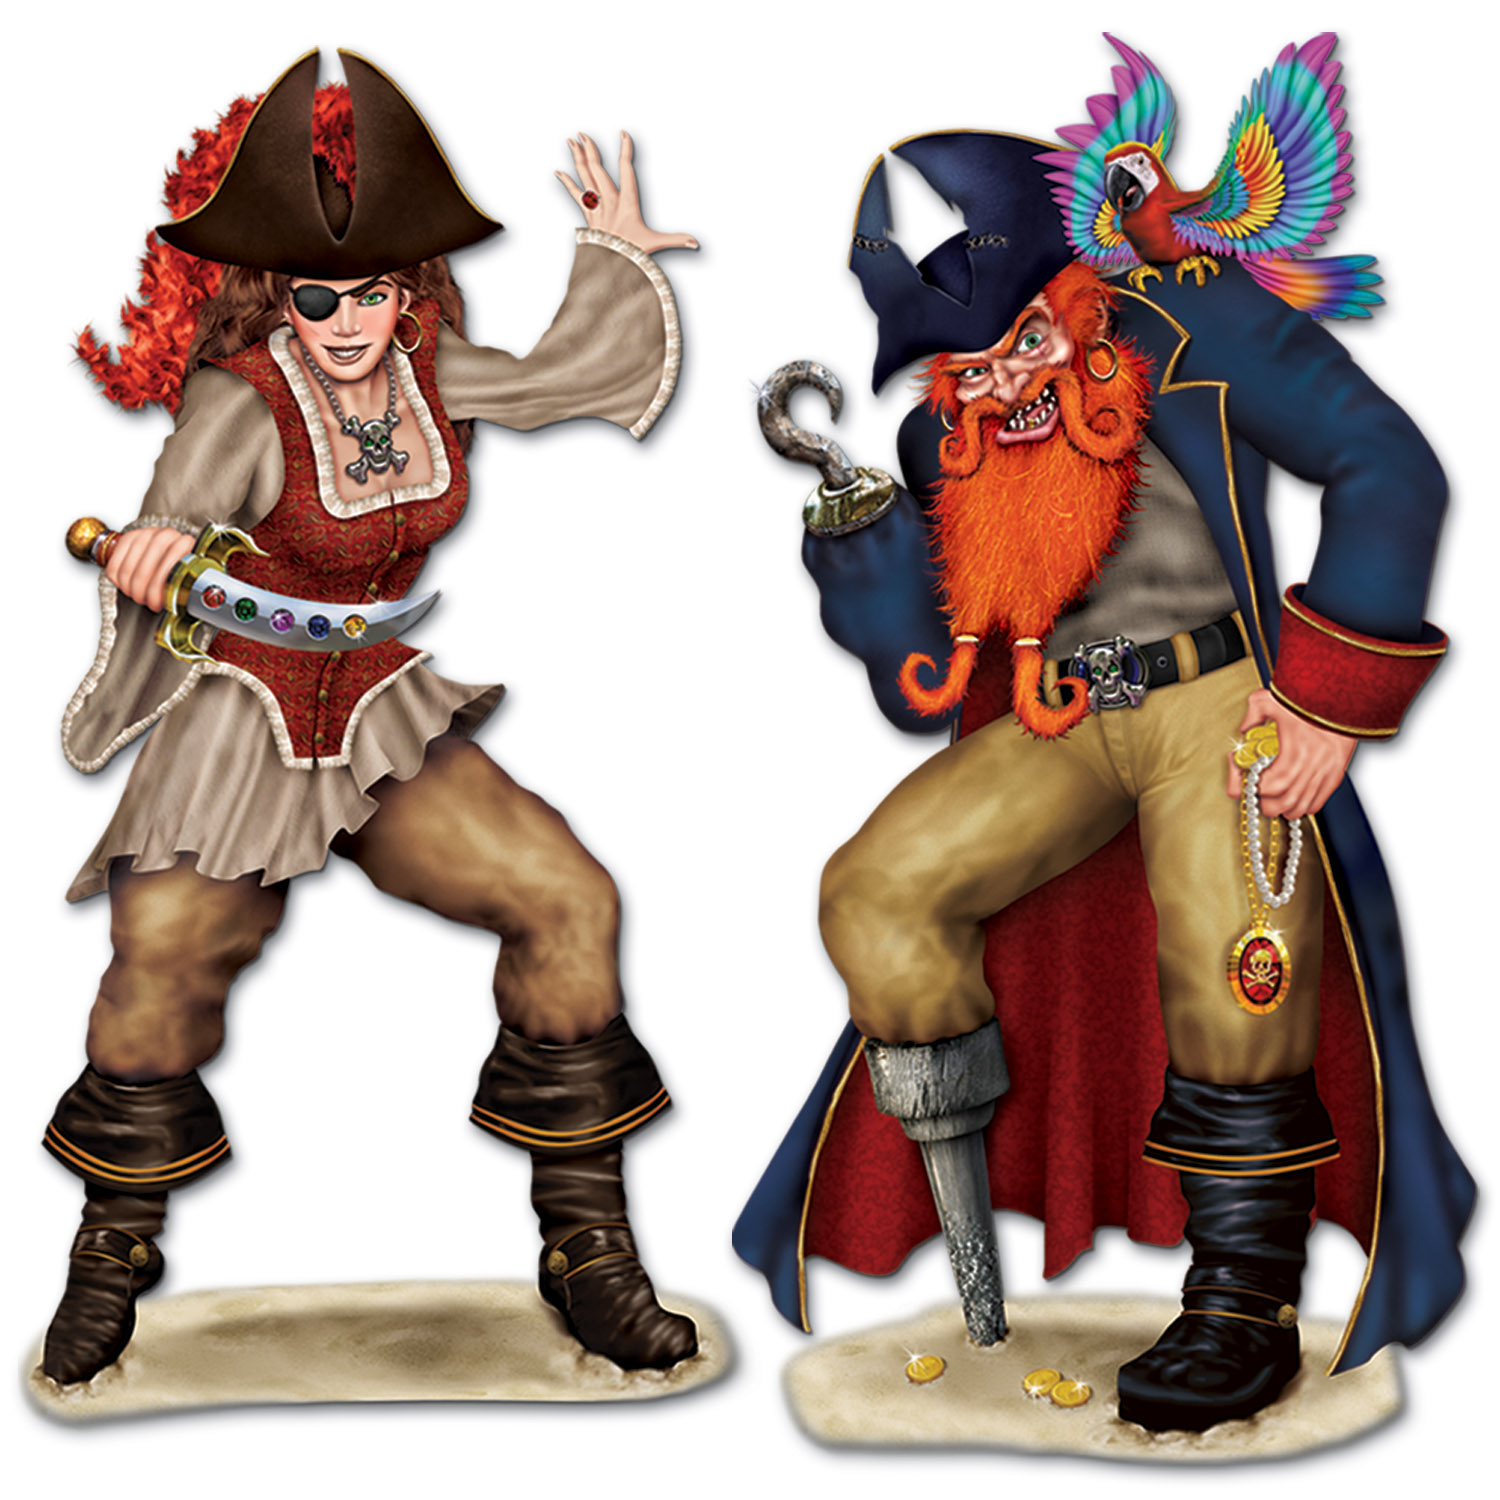 Bonny Blade & Calico Jack Props (Pack of 24) Wall Decorations, Pirate, Lifesize pirates, Cheap pirates, Pirate theme, Birthday idea, Pirate party, Wholesale supplies, Party decorations, Cheap wall decor